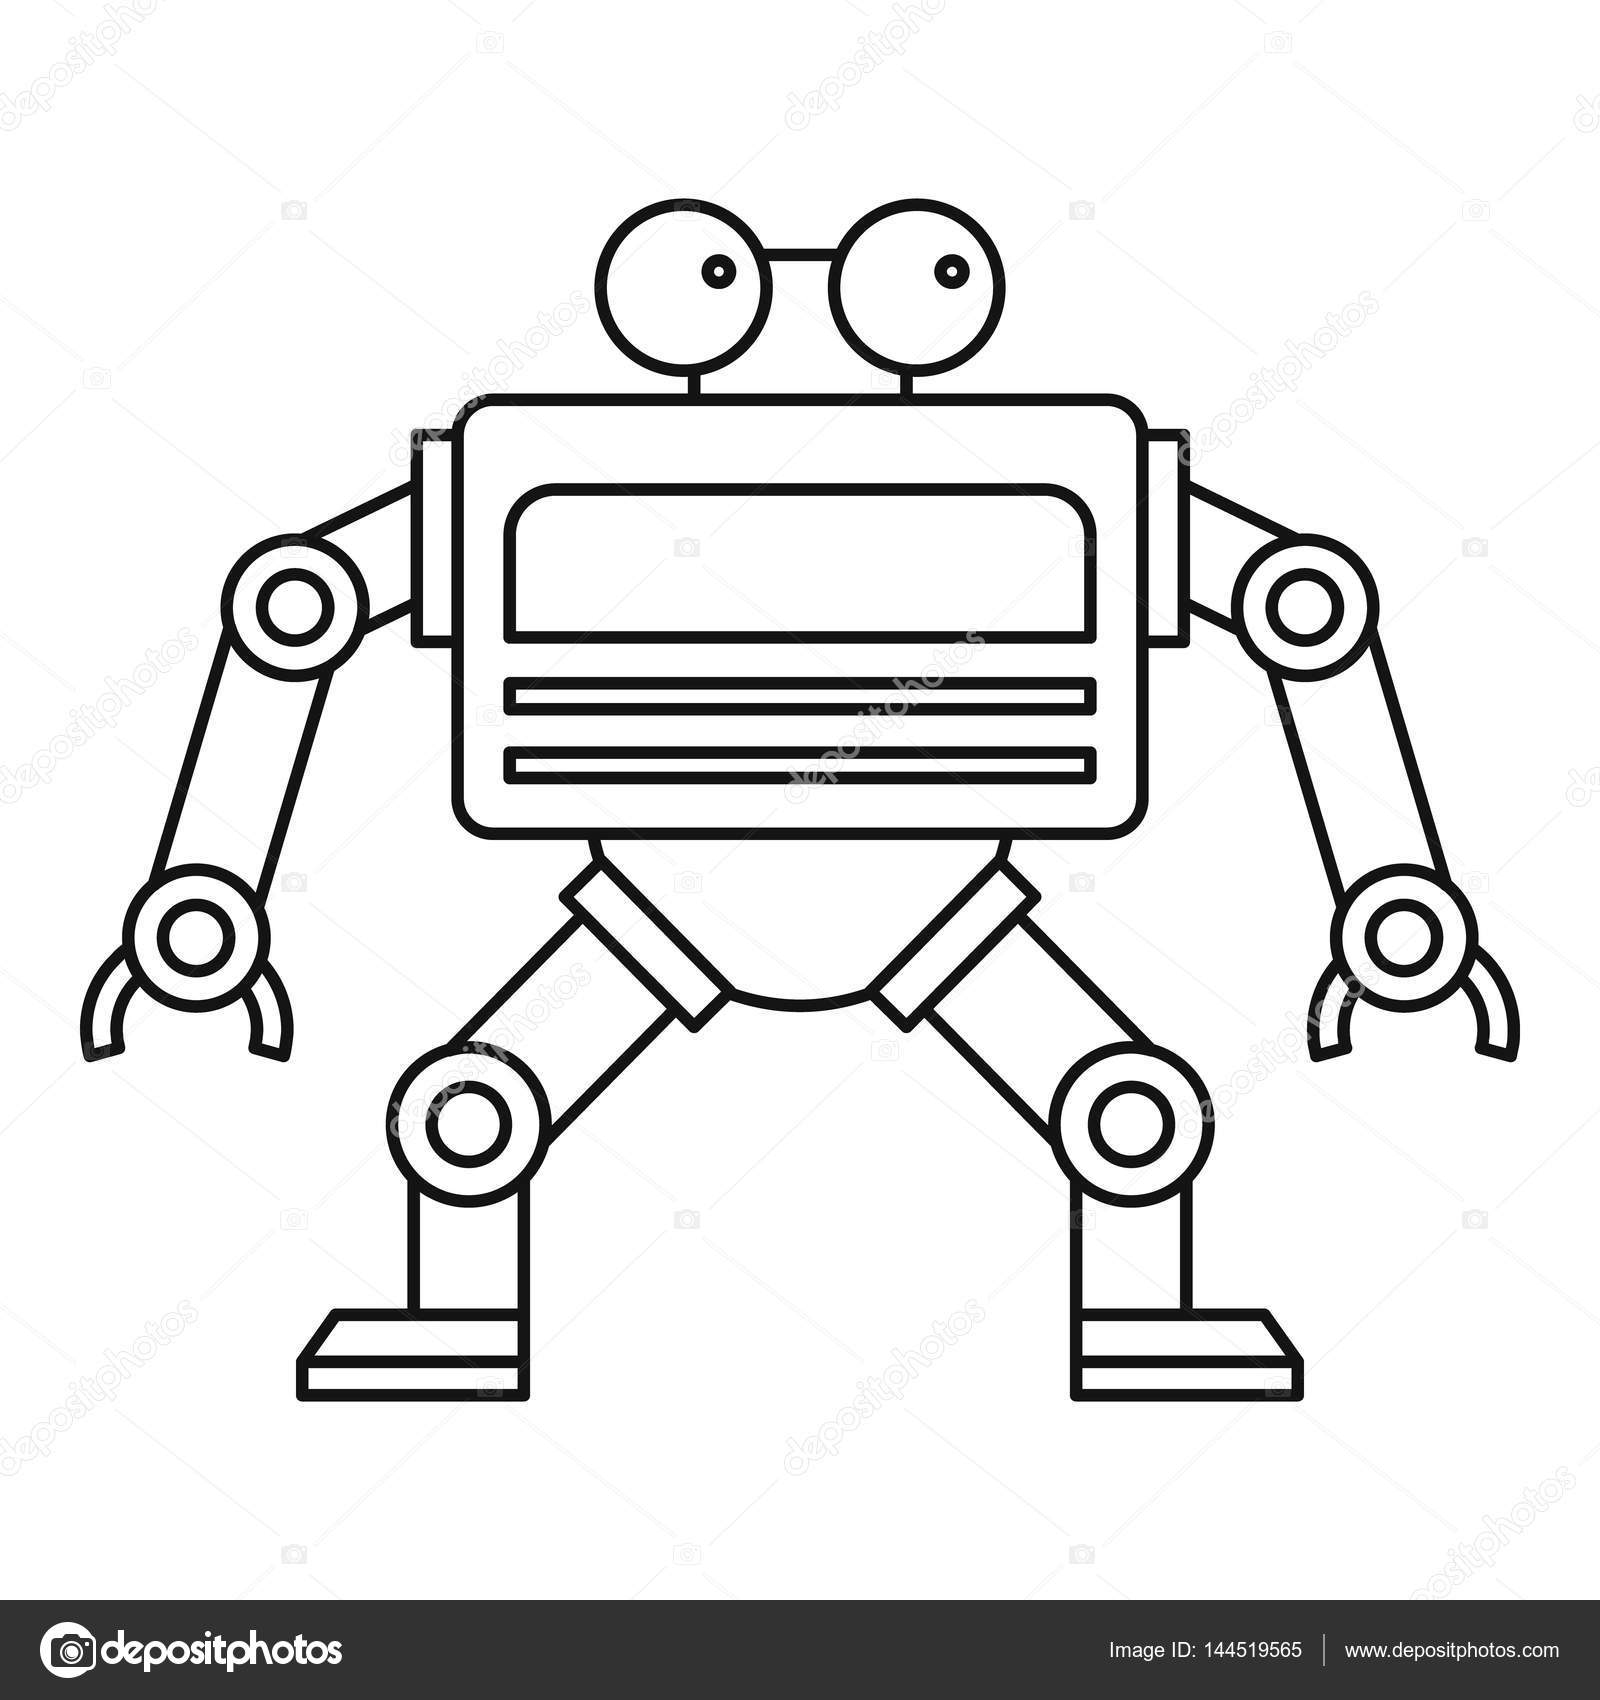 Automation machine robot icon outline style stock for Decor outline